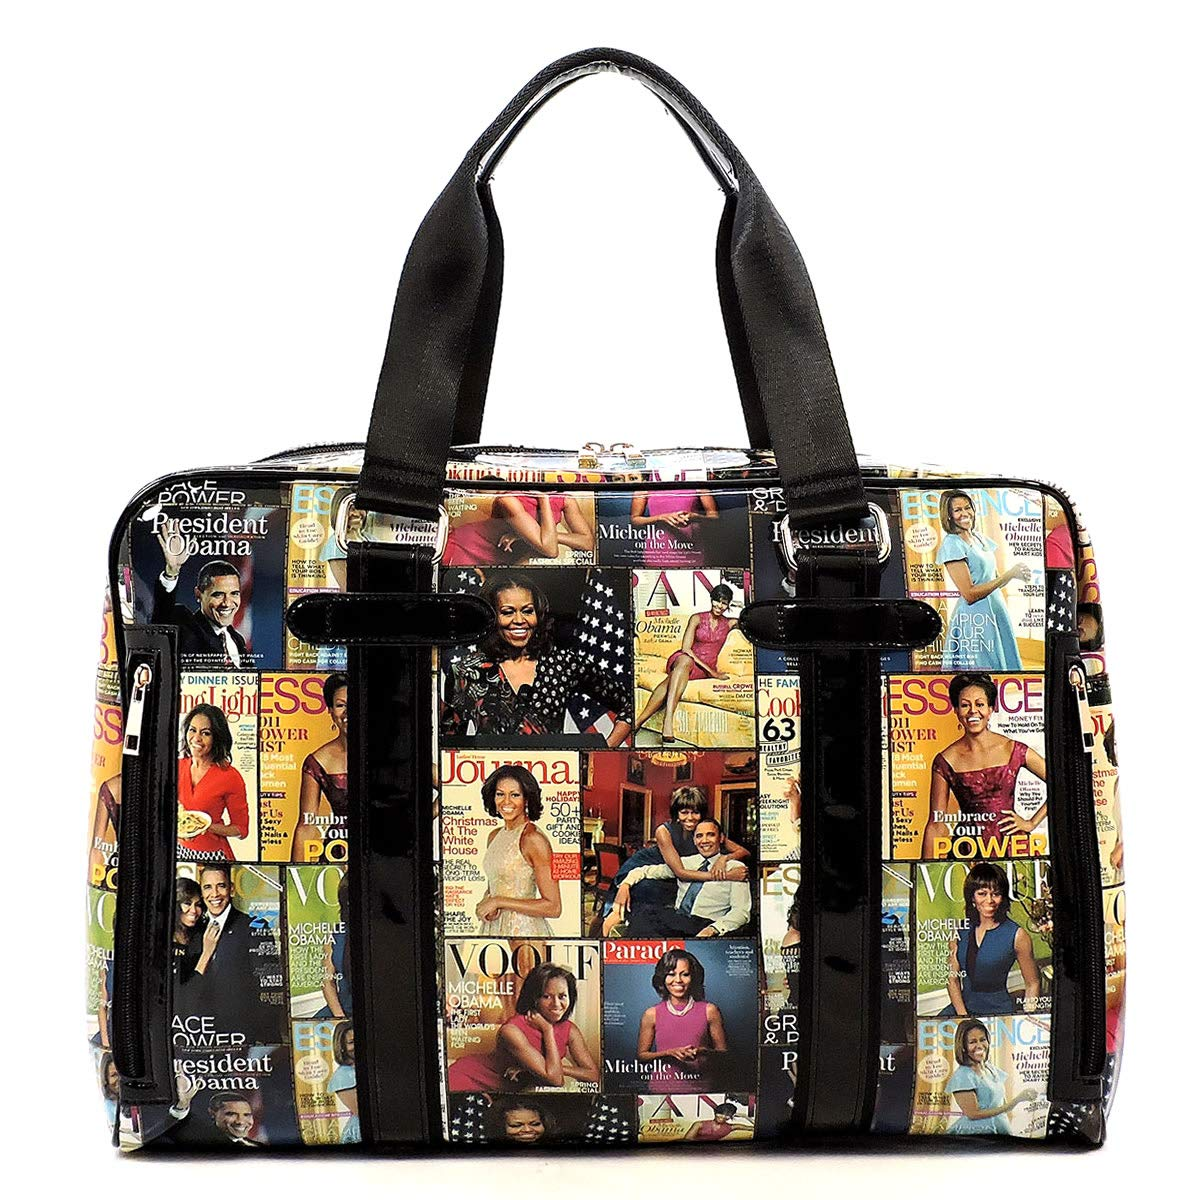 Glossy Magazine Cover Collage Michelle Obama Printed Travel Duffel Bags Gym Bags Duffel #1-Grey